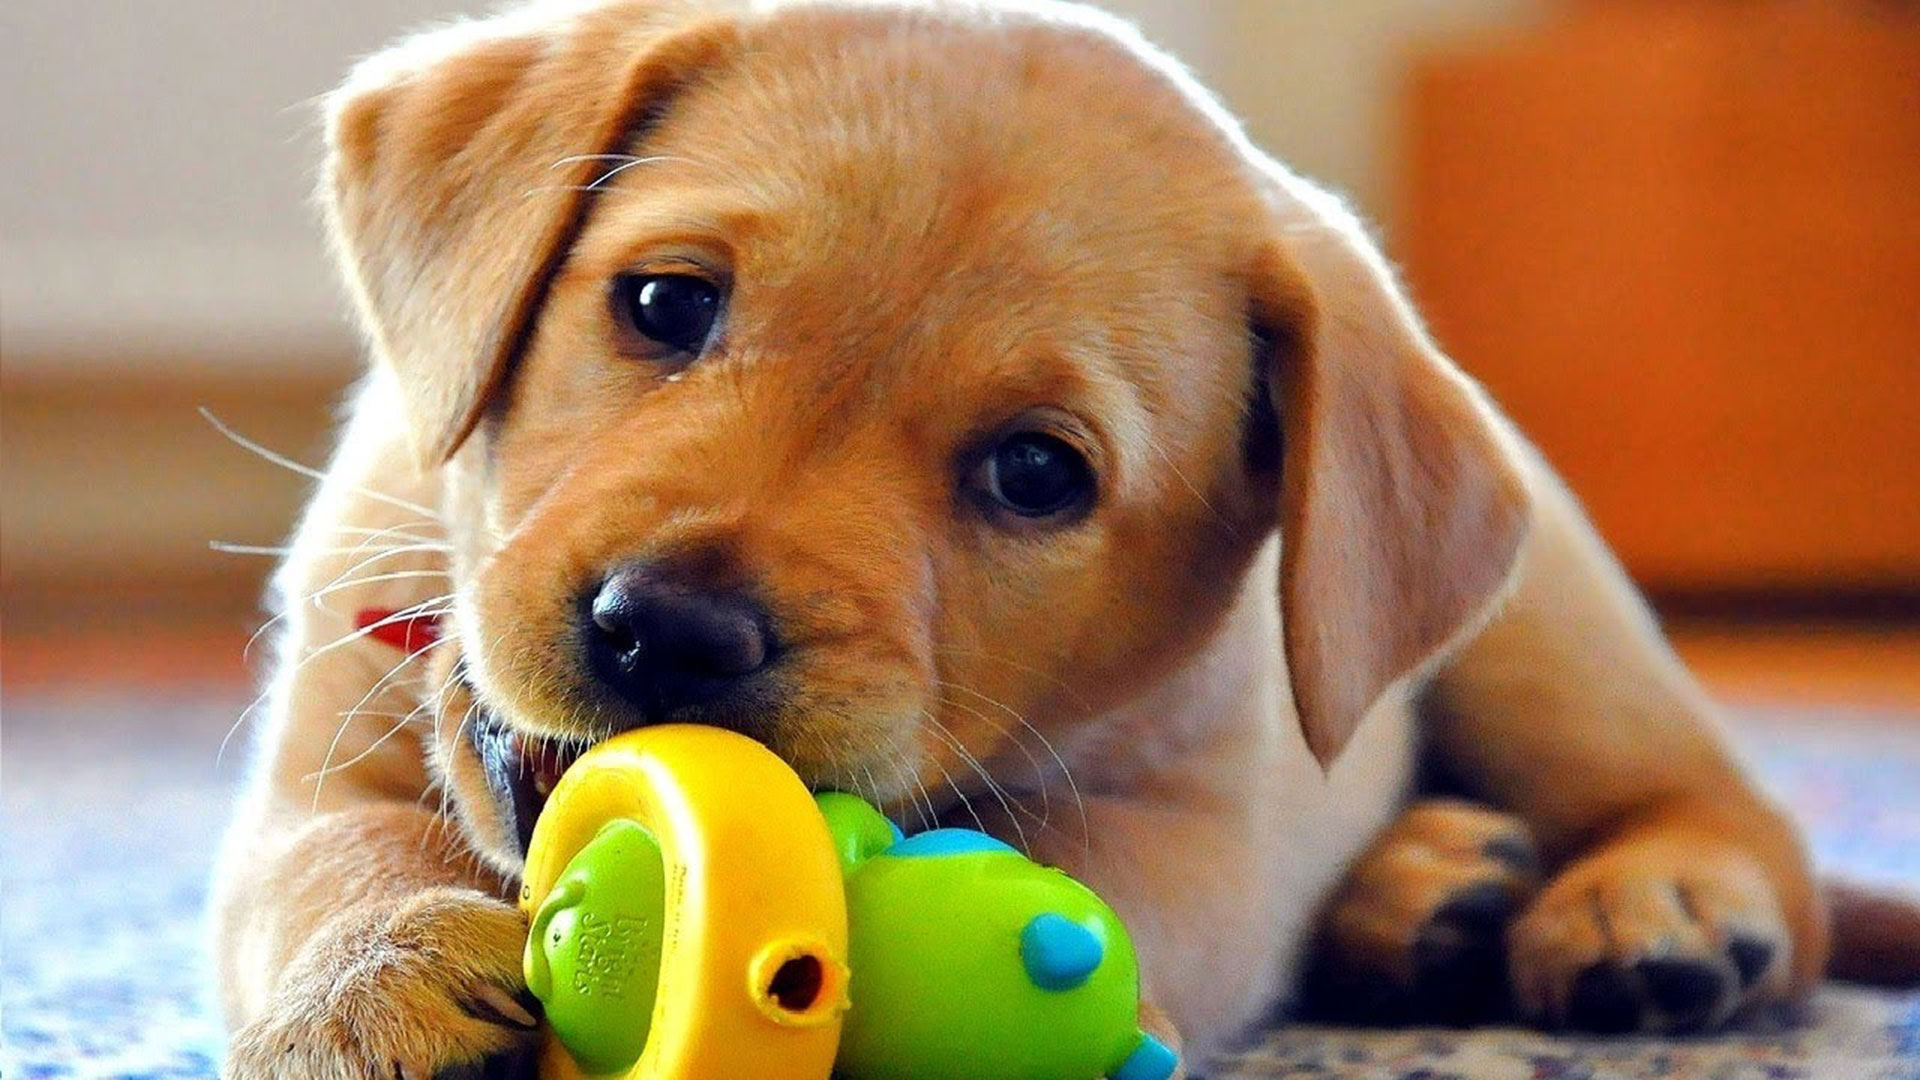 cute-dog-play-with-toy1920x1080-via-Classy-Bro-wallpaper-wp3604457